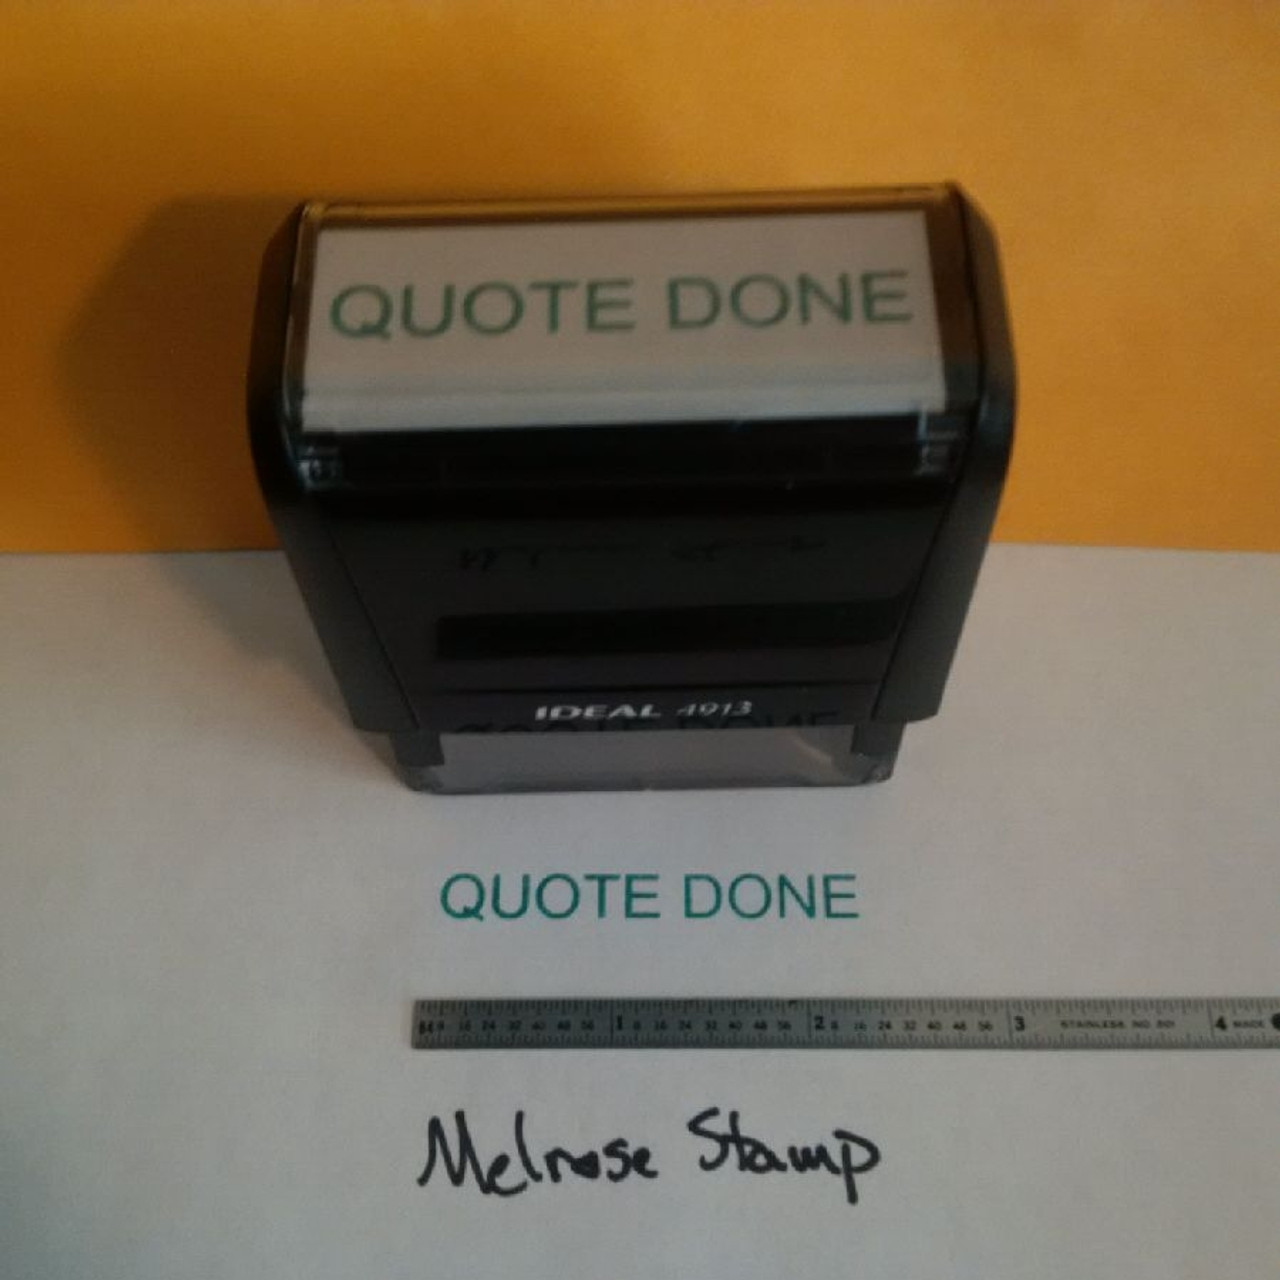 QUOTE DONE Rubber Stamp for office use self-inking